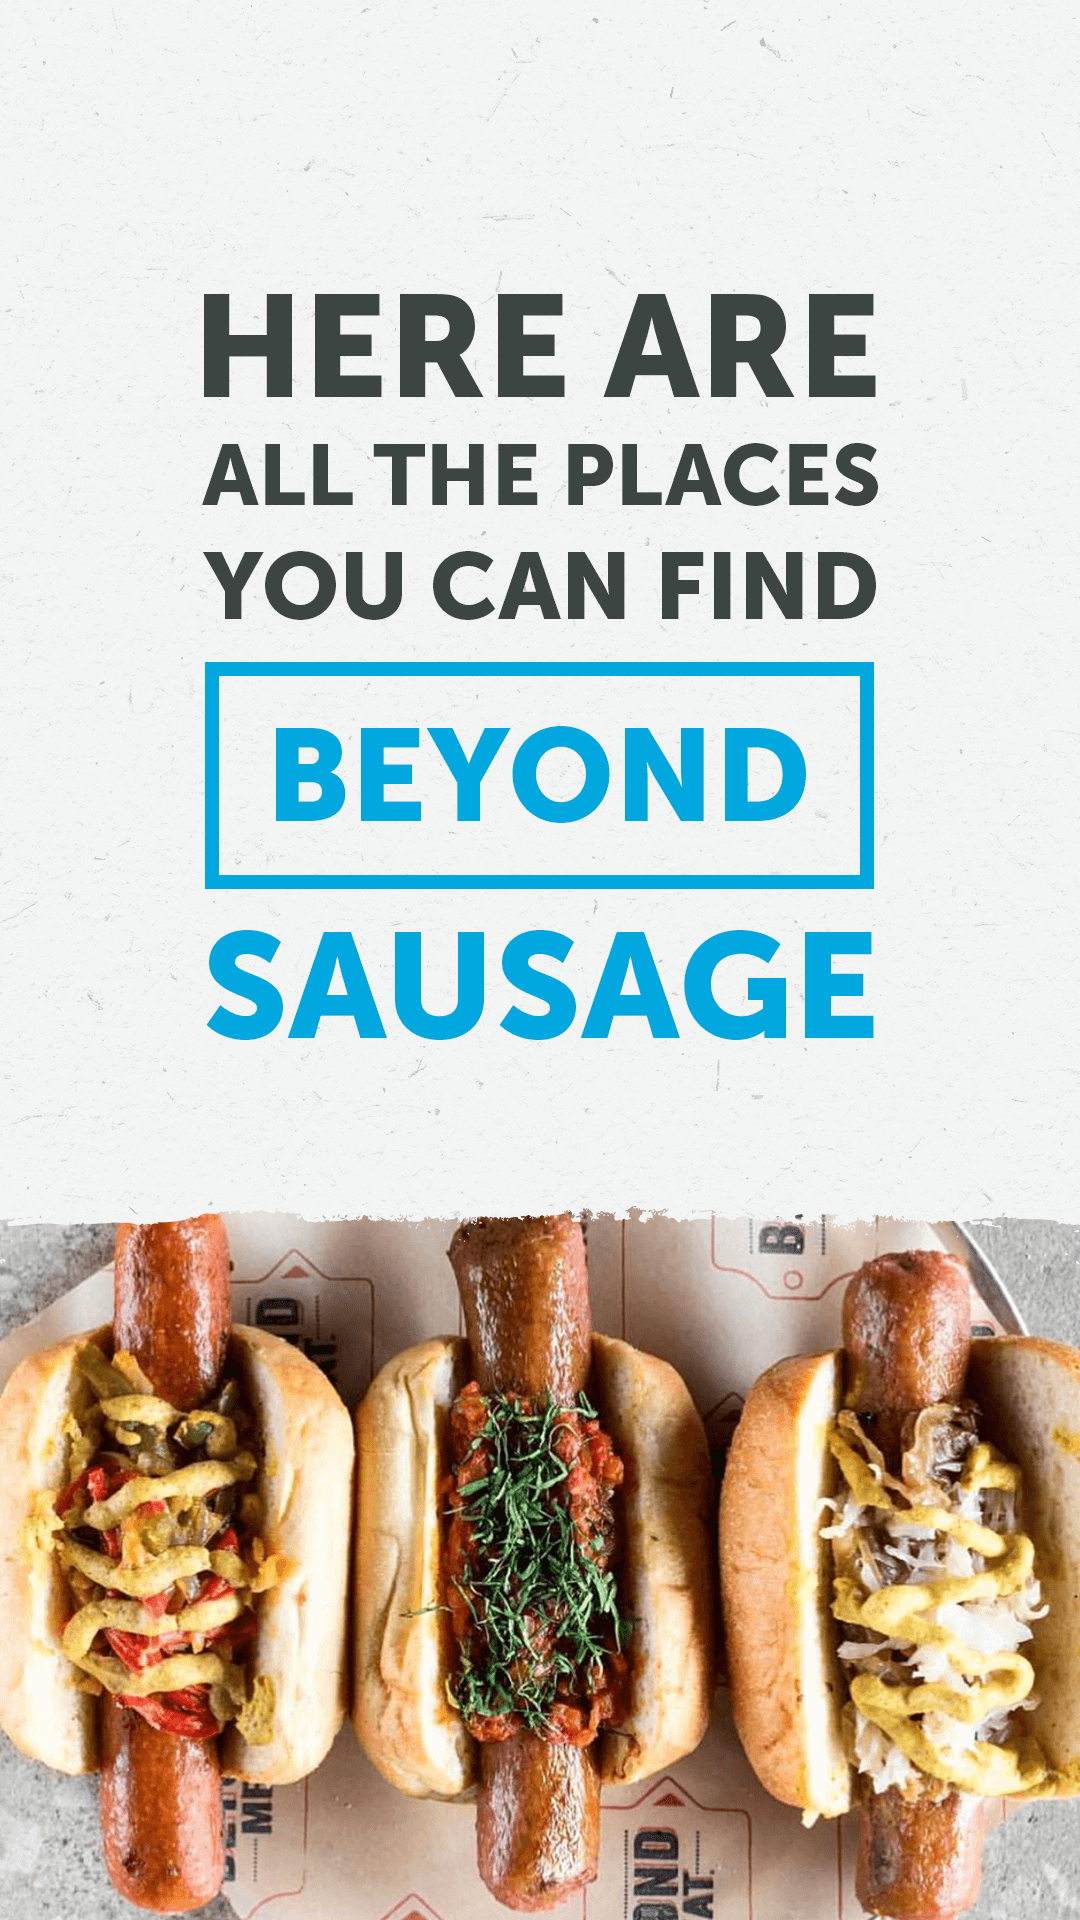 Here Are All the Places You Can Find Beyond Sausage